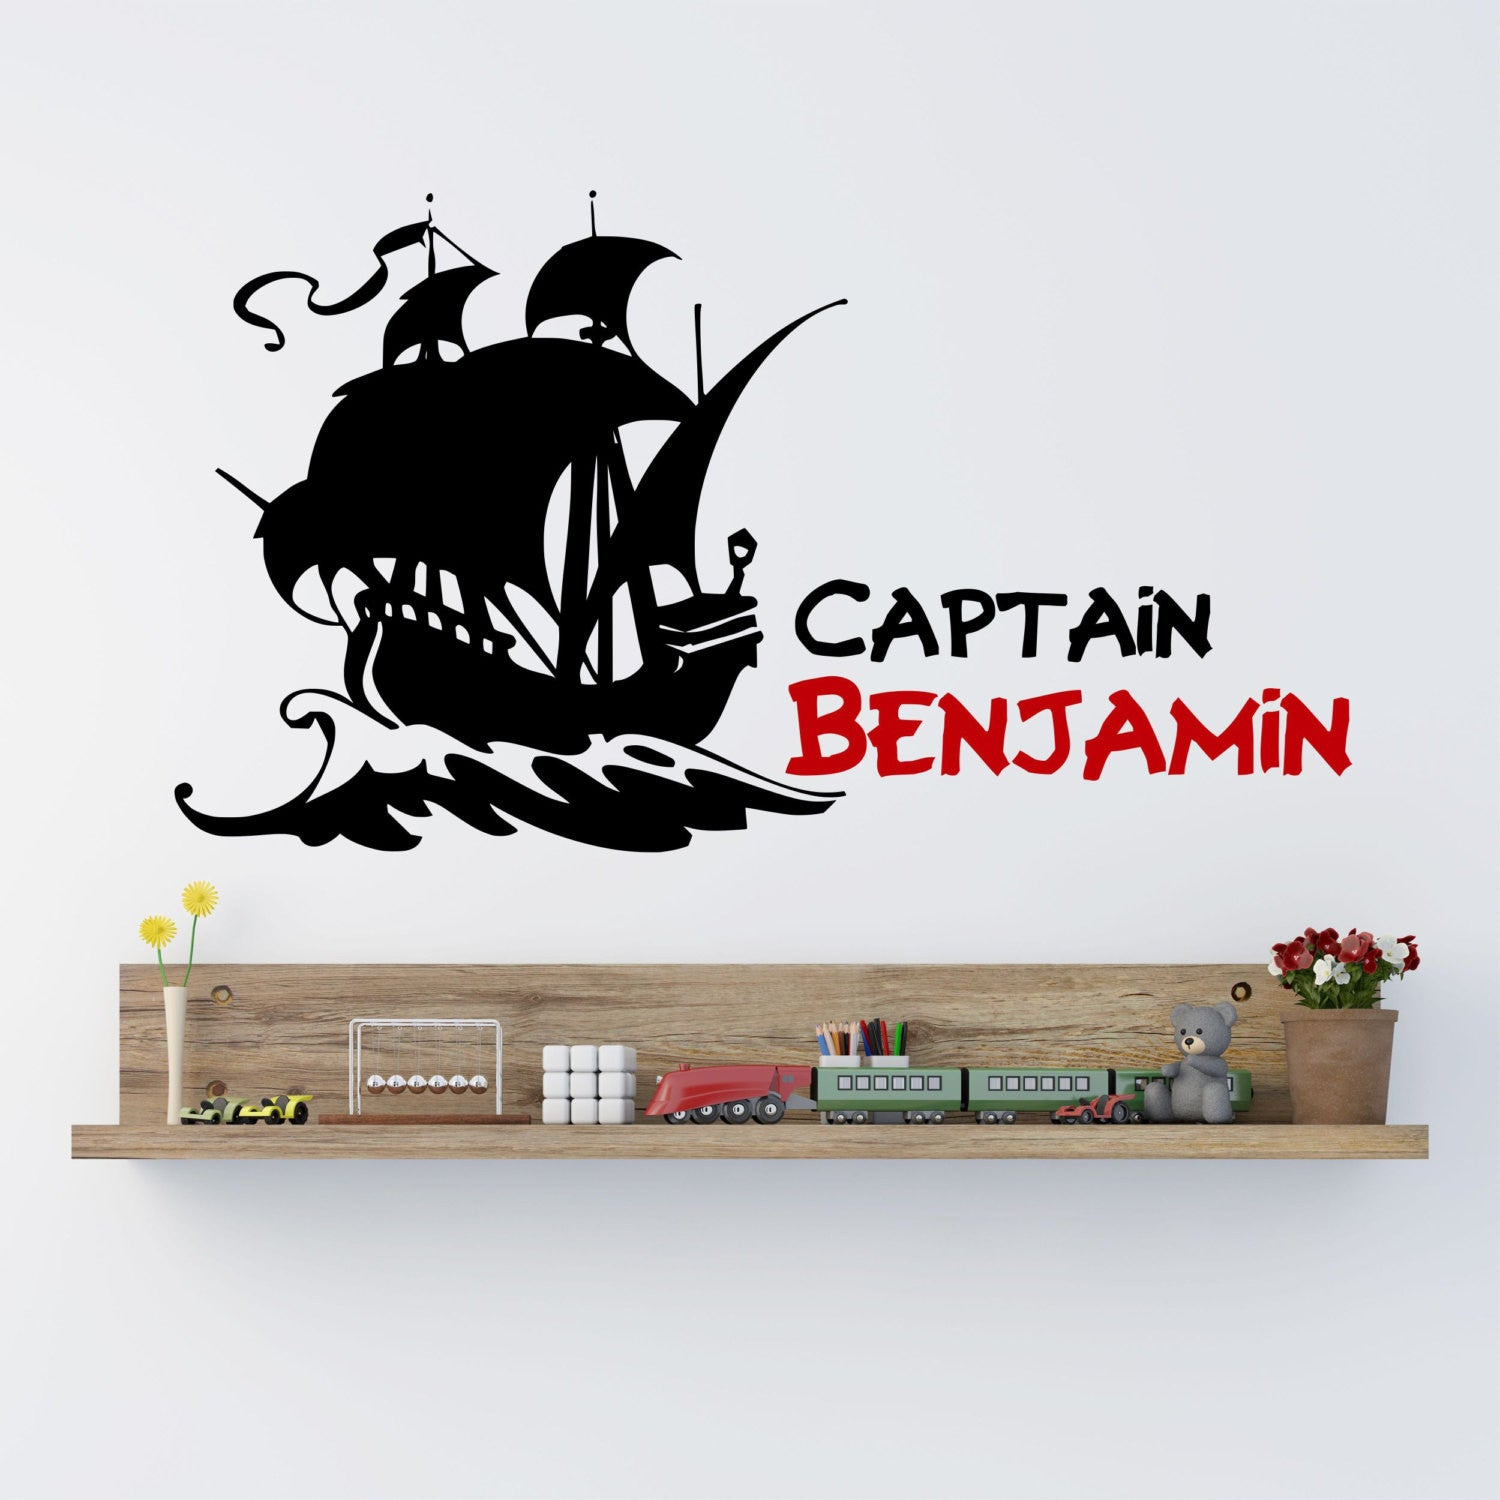 Pirate Ship Boys Name Wall Decal   By Decor Designs Decals, Pirate Wall  Decal,